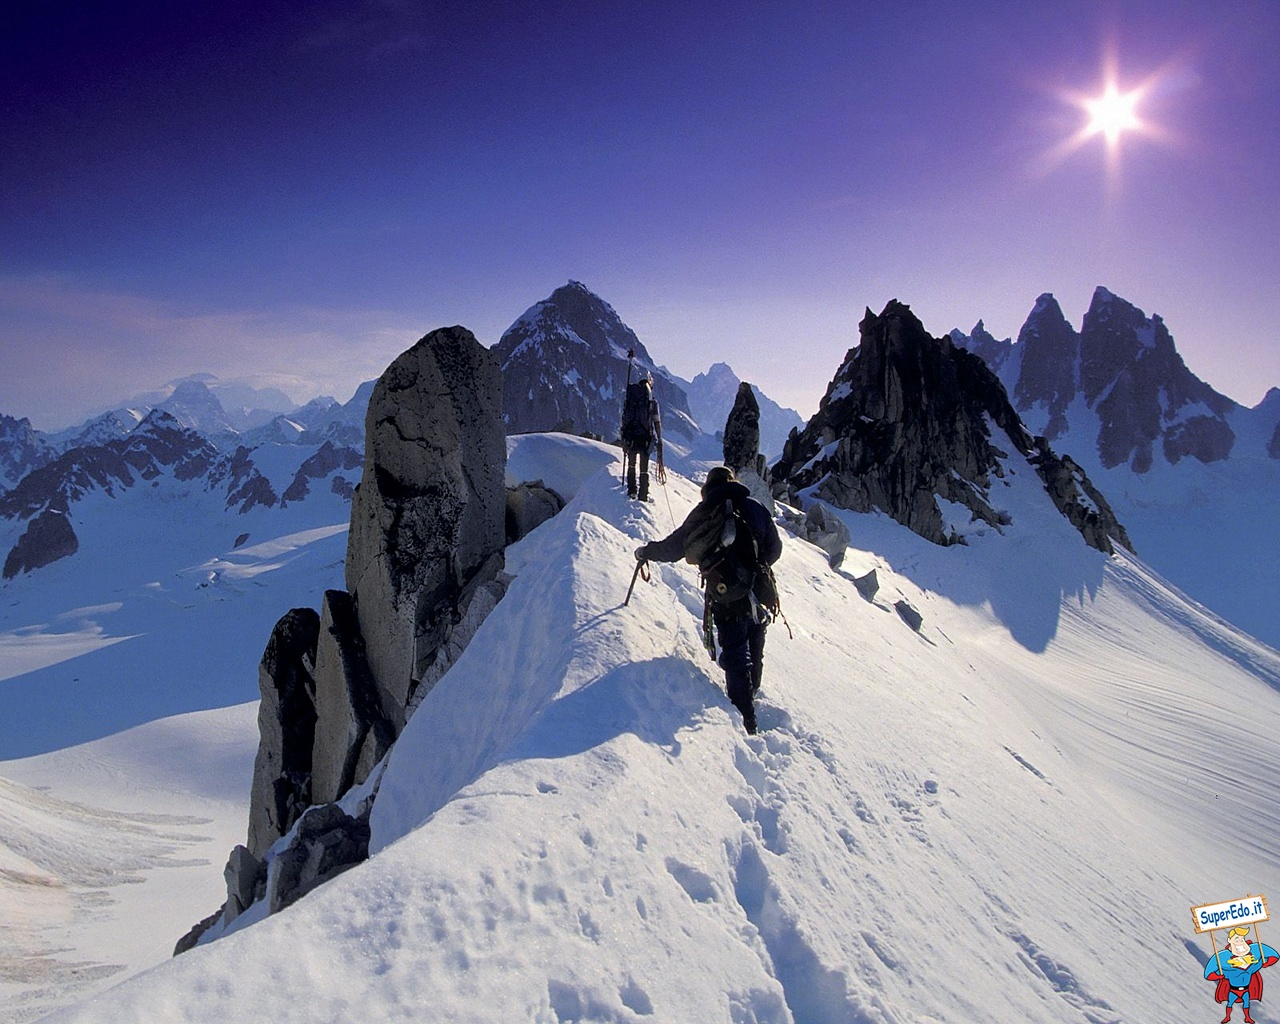 1280x1024 - Mountaineering Wallpapers 17